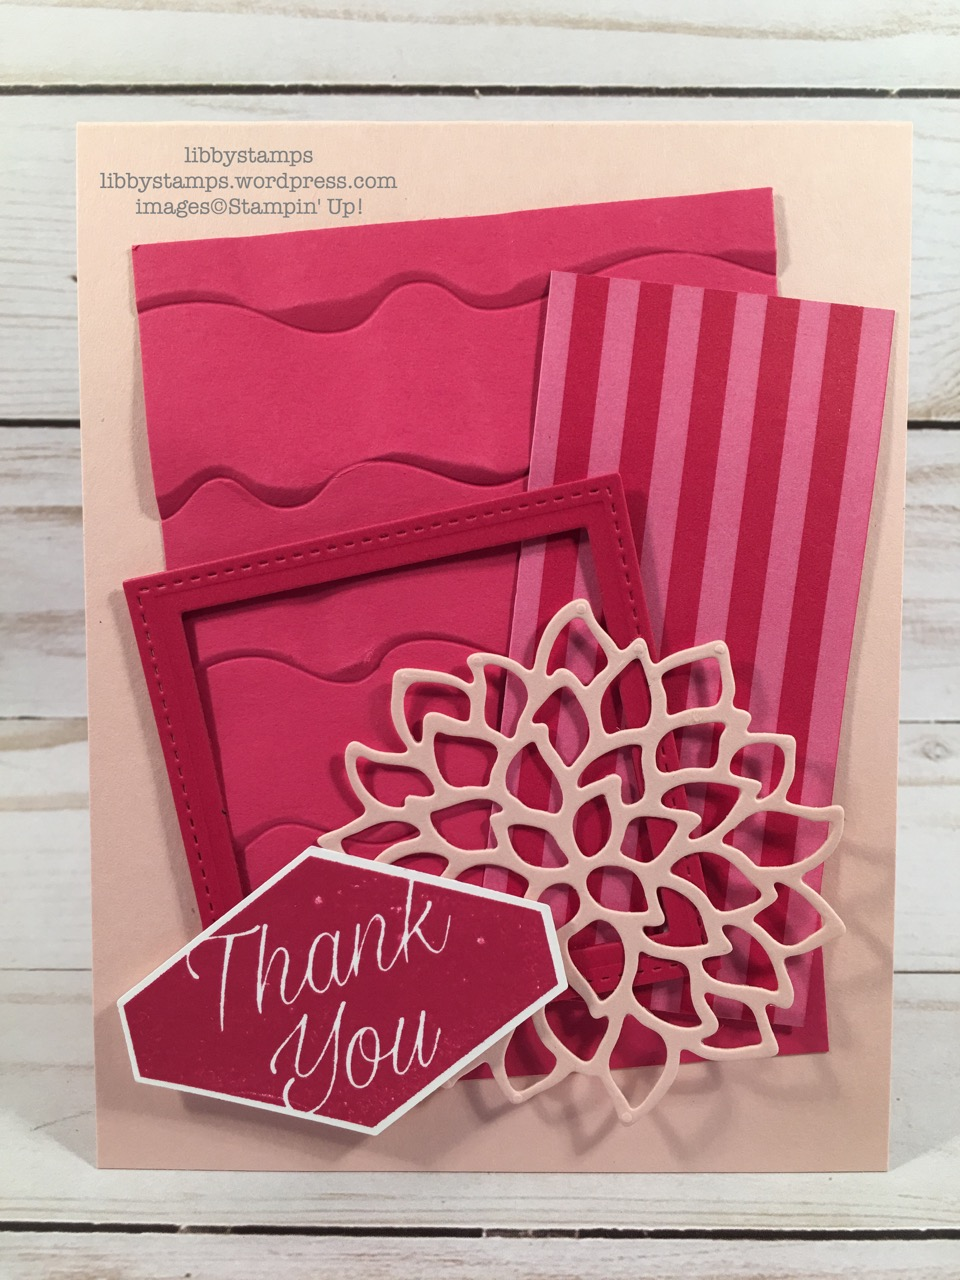 libbystamps, stampin up, Accented Blooms, May Flowers Framelits May Flowers, Stitched Shapes Framelits, Layering Squares Framelits, Ruffled Dynamic EF, In-Color 2018-2020 6x6 DSP, CCMC